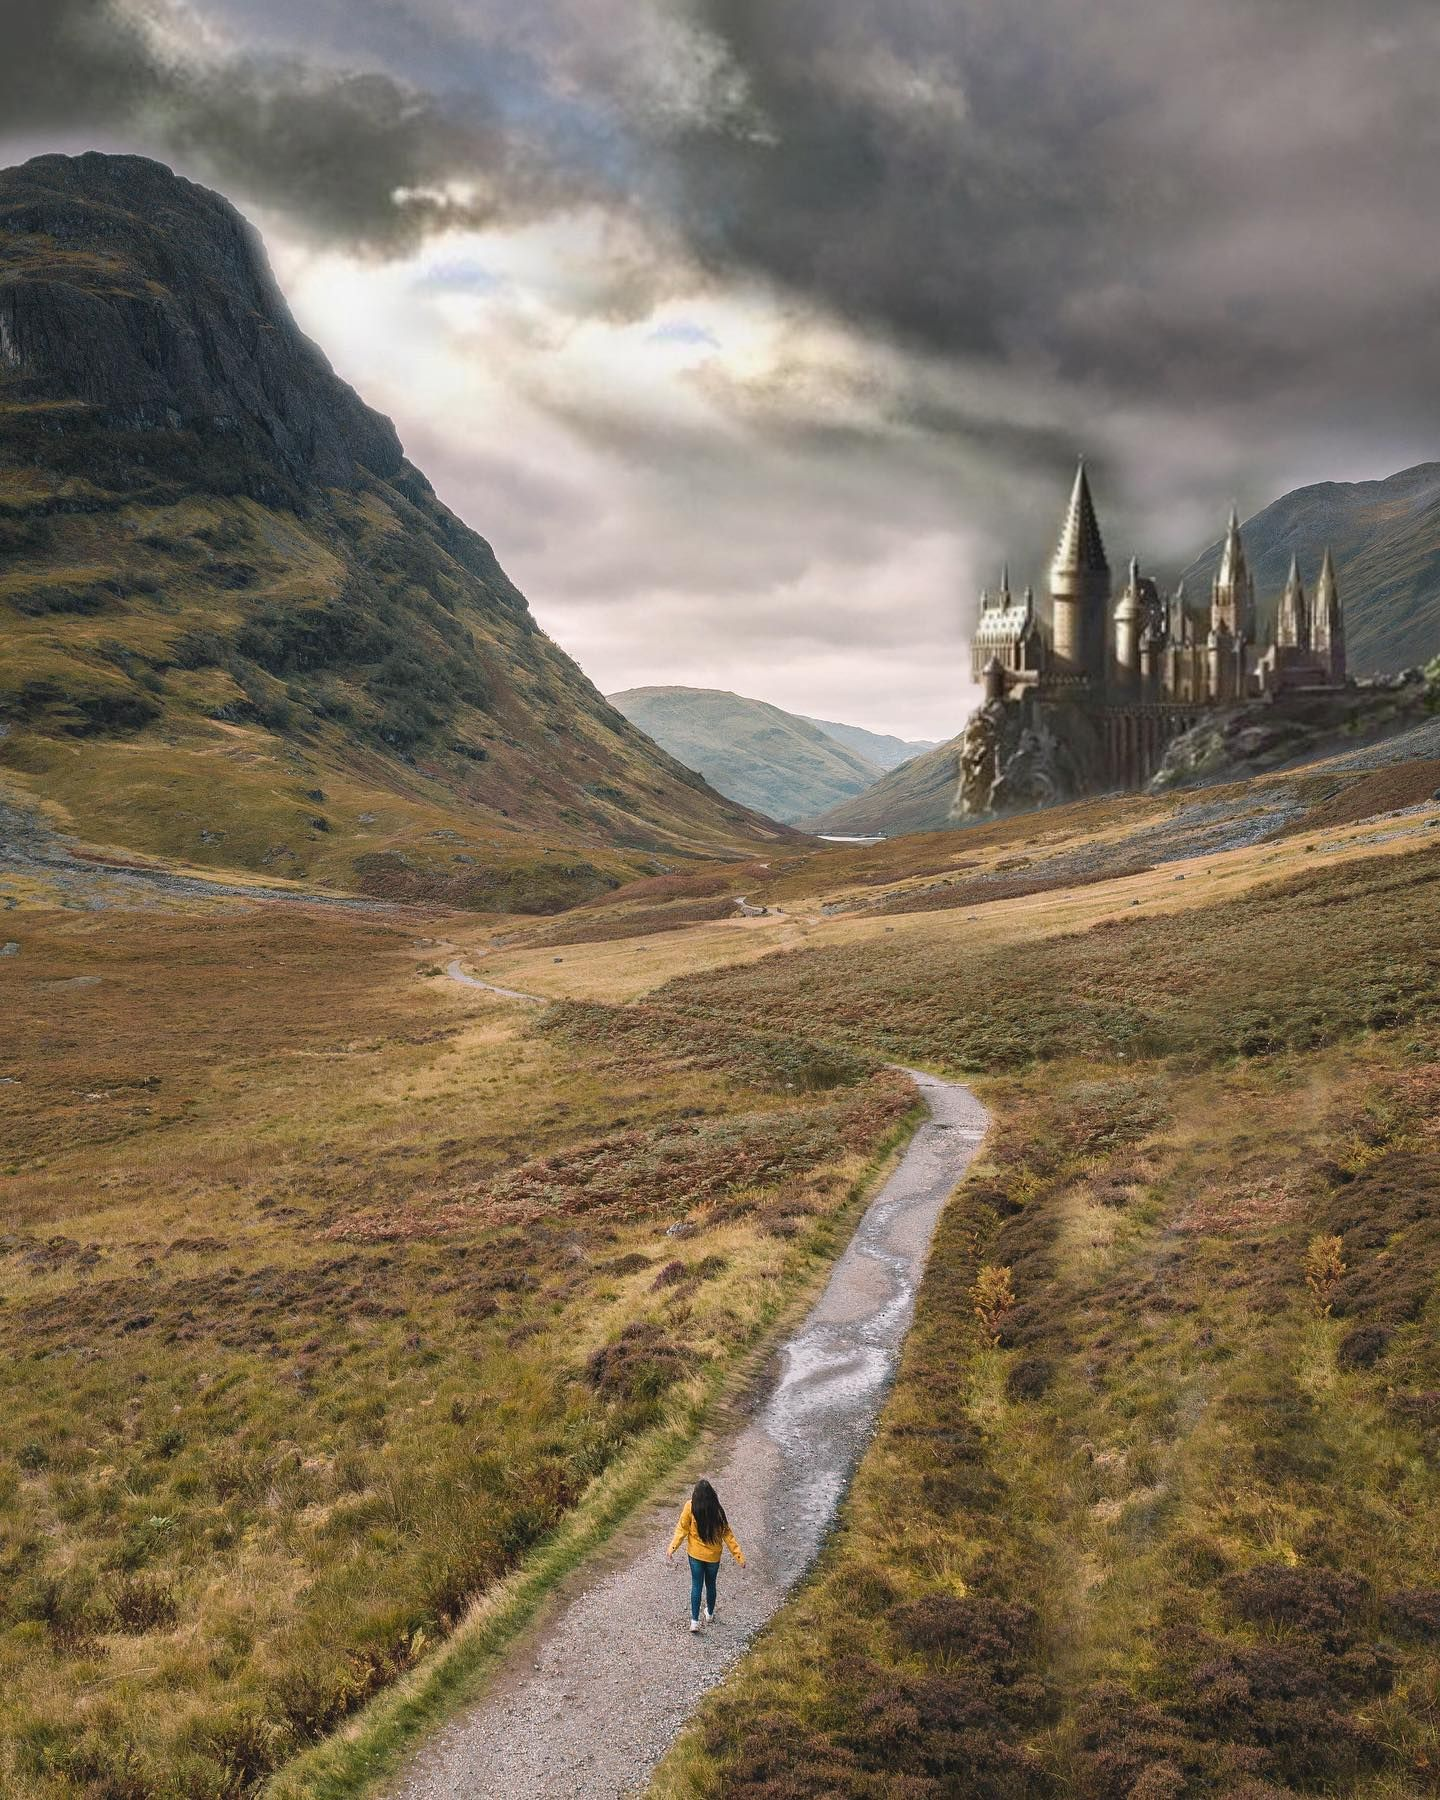 Always Take The Scenic Route Decided To Bypass The Thestrals And Take A Nice Leisurely Walk All The Way To Hogwarts Did You Scenic Routes Scenic Hogwarts